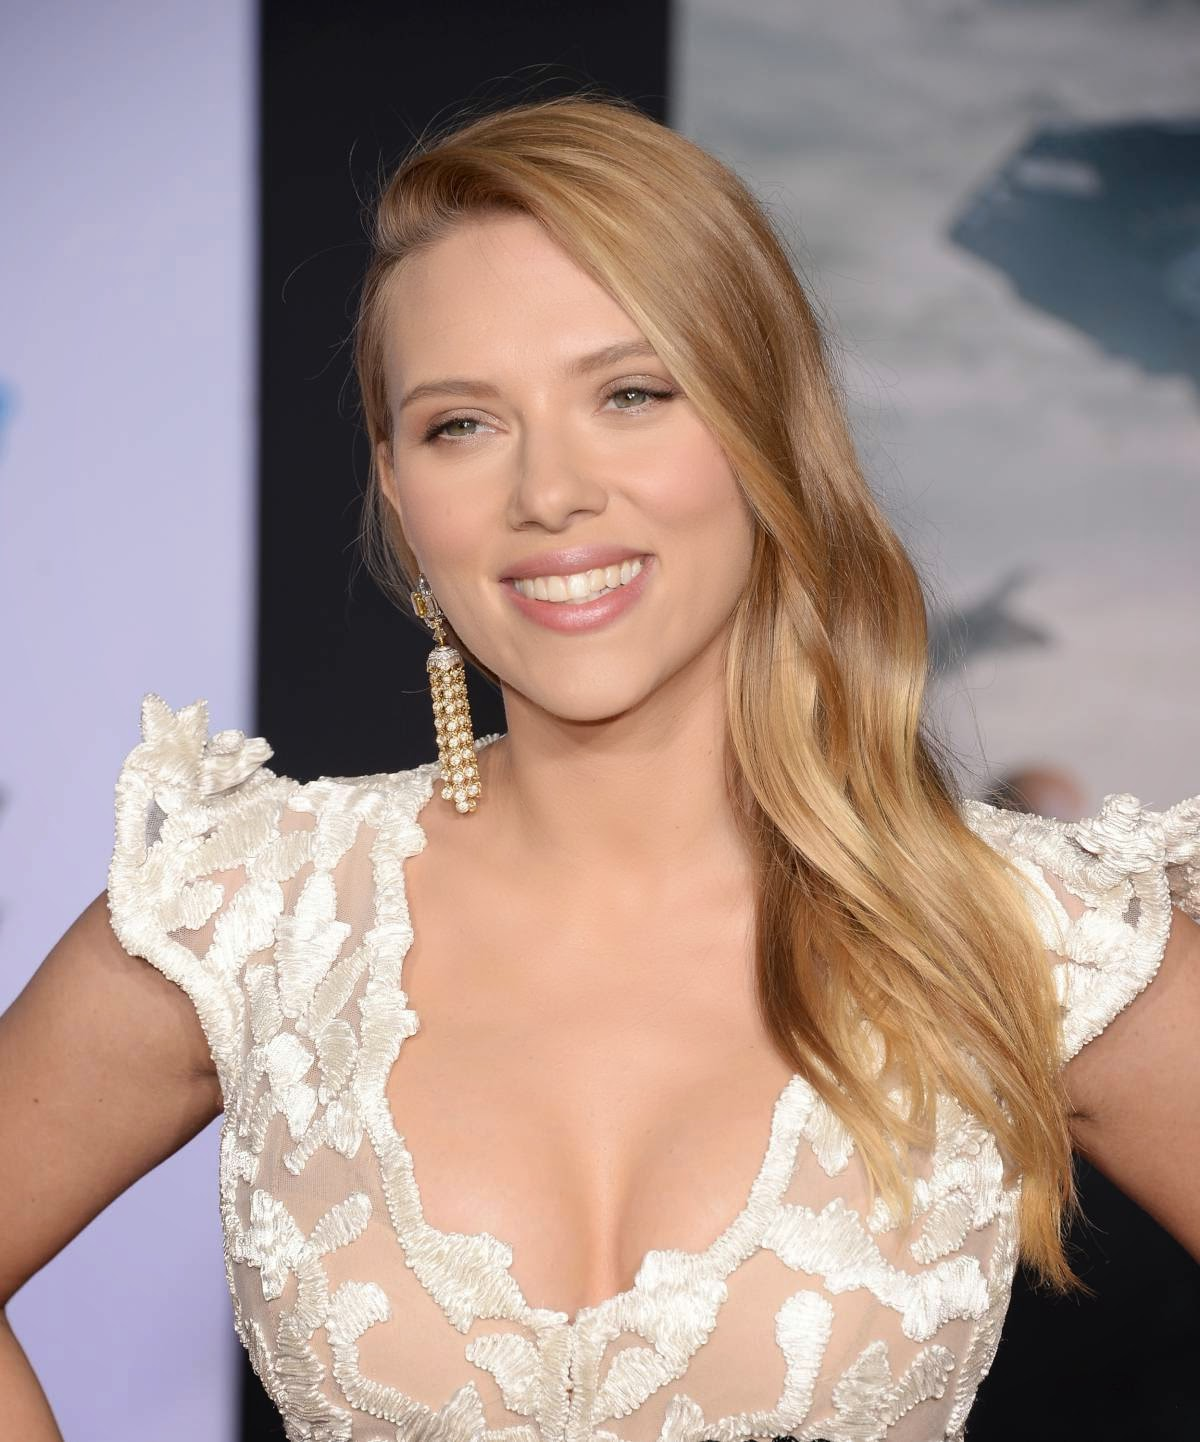 Scarlett johansson big cleavage